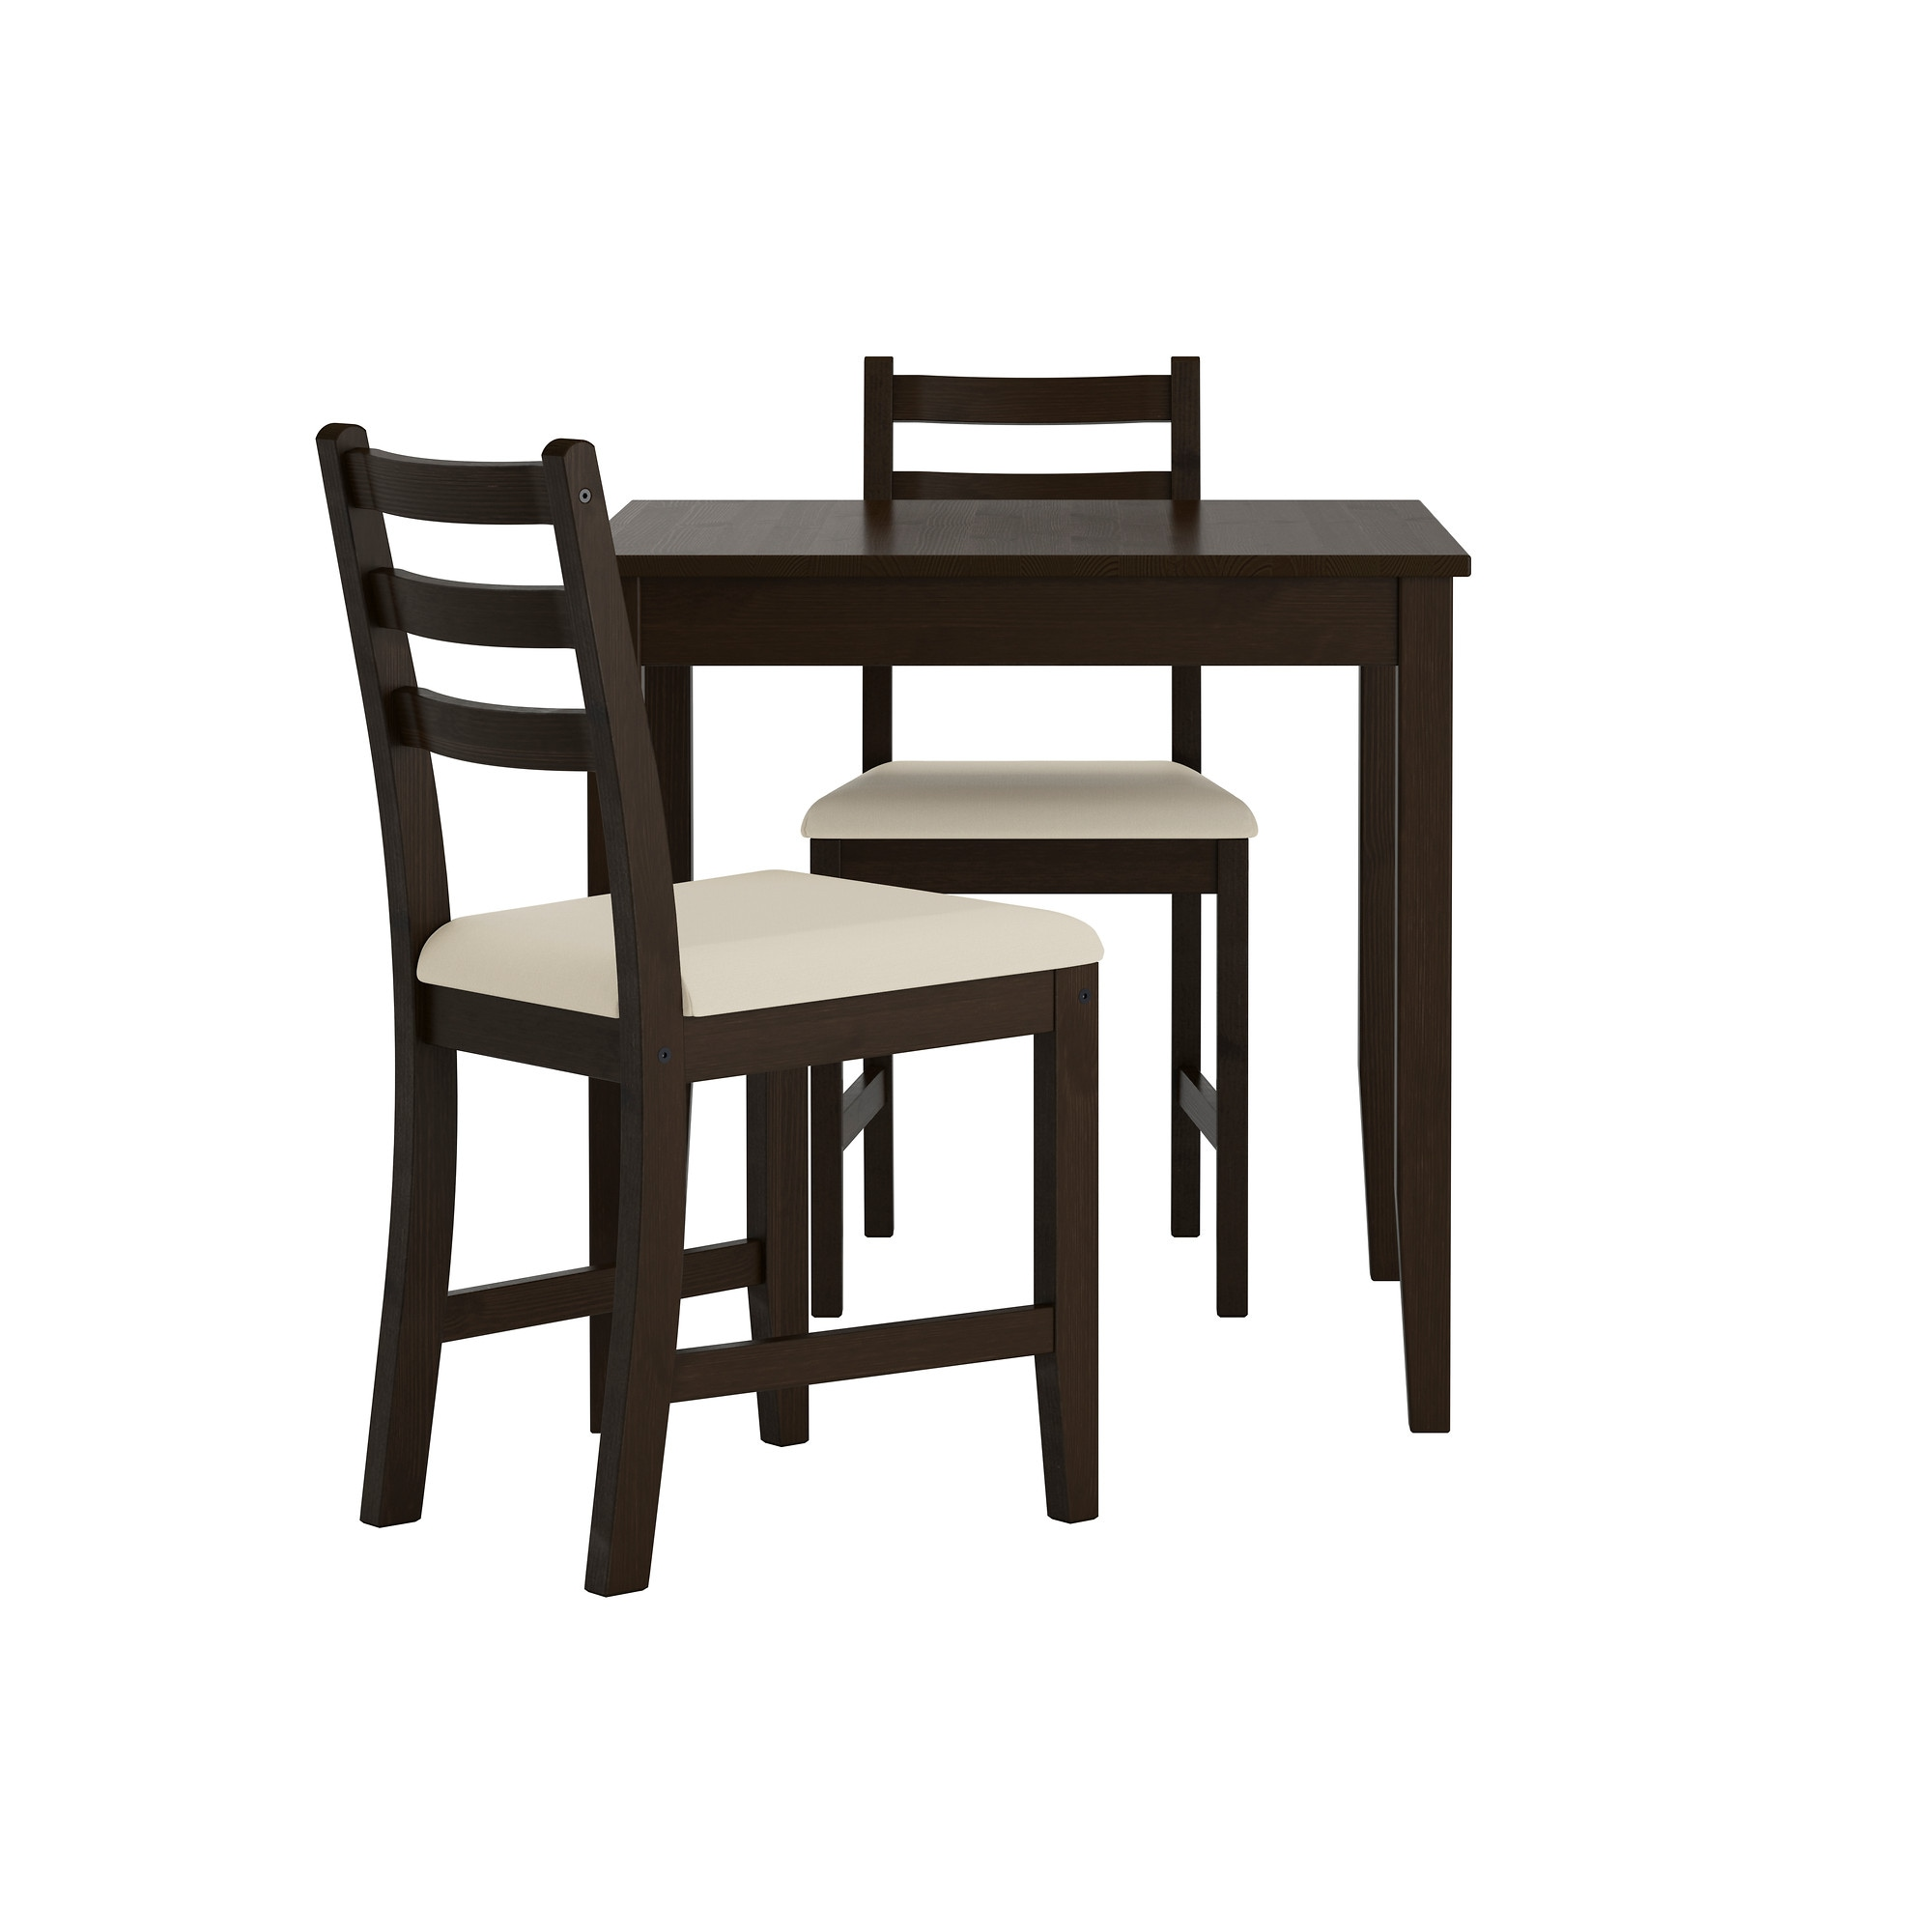 LERHAMN Table And 2 Chairs, Black Brown, Vittaryd Beige Length: 29 1